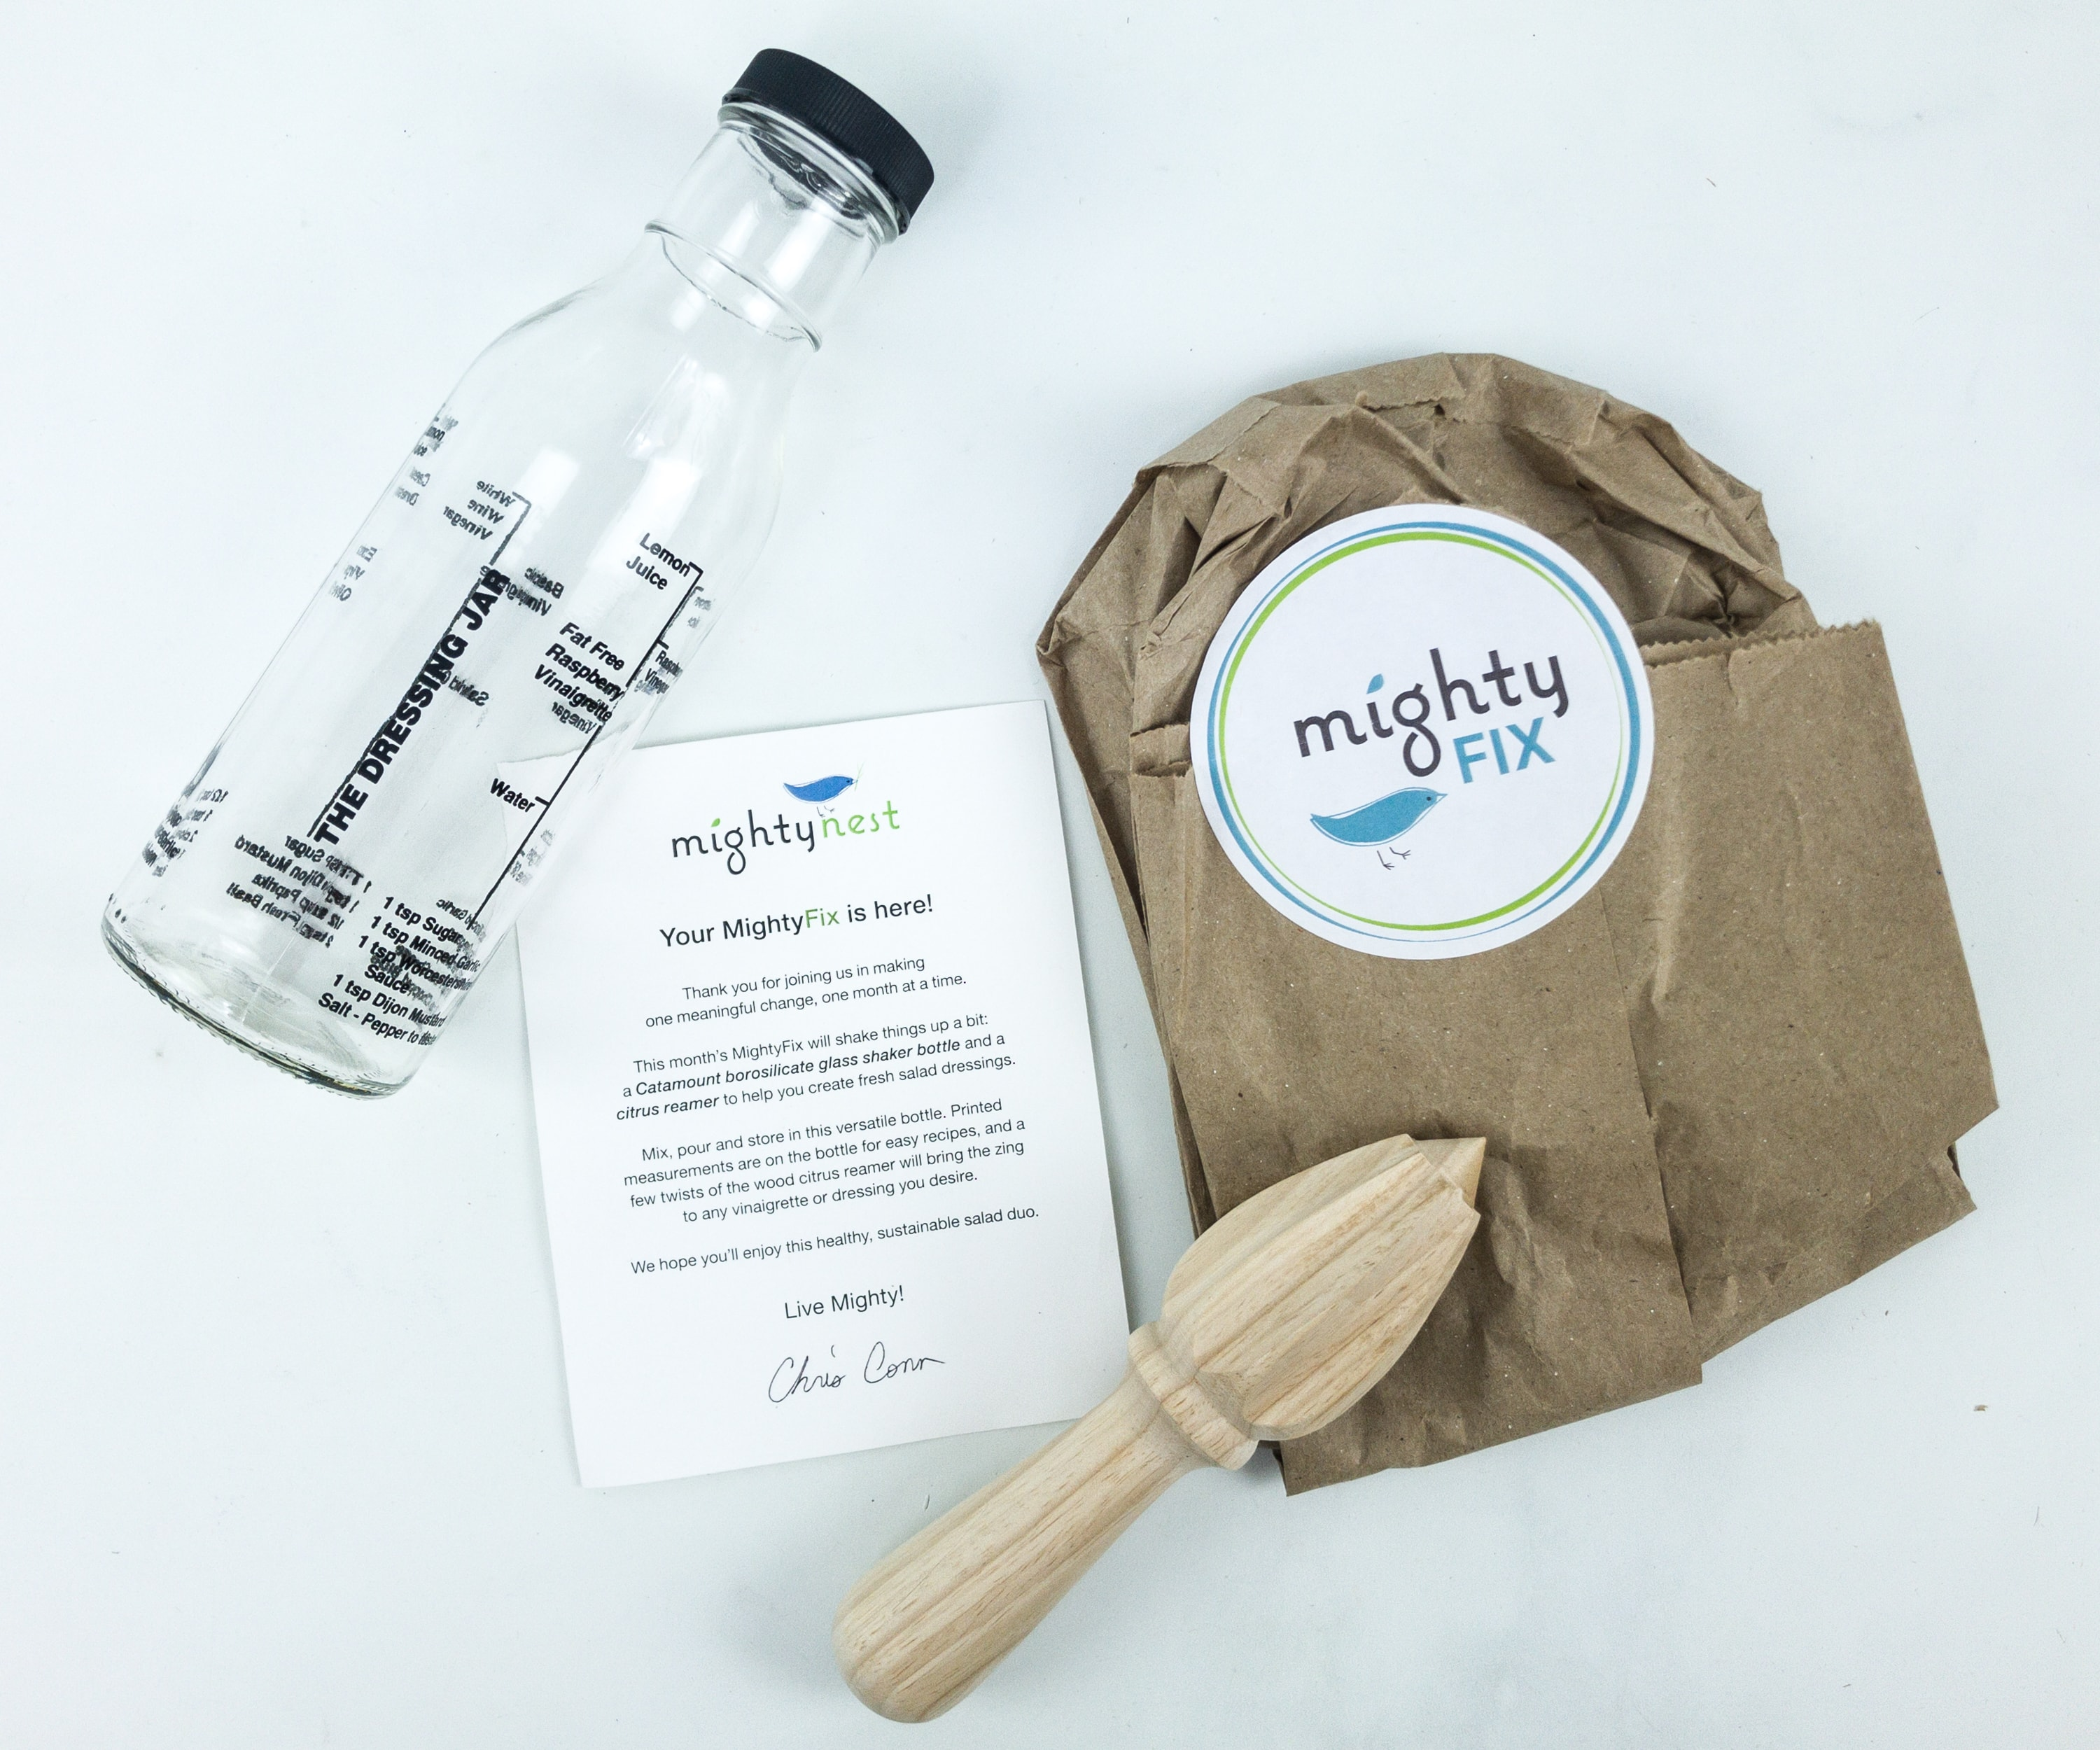 Mighty Fix July 2019 Review + First Month $3 Coupon!